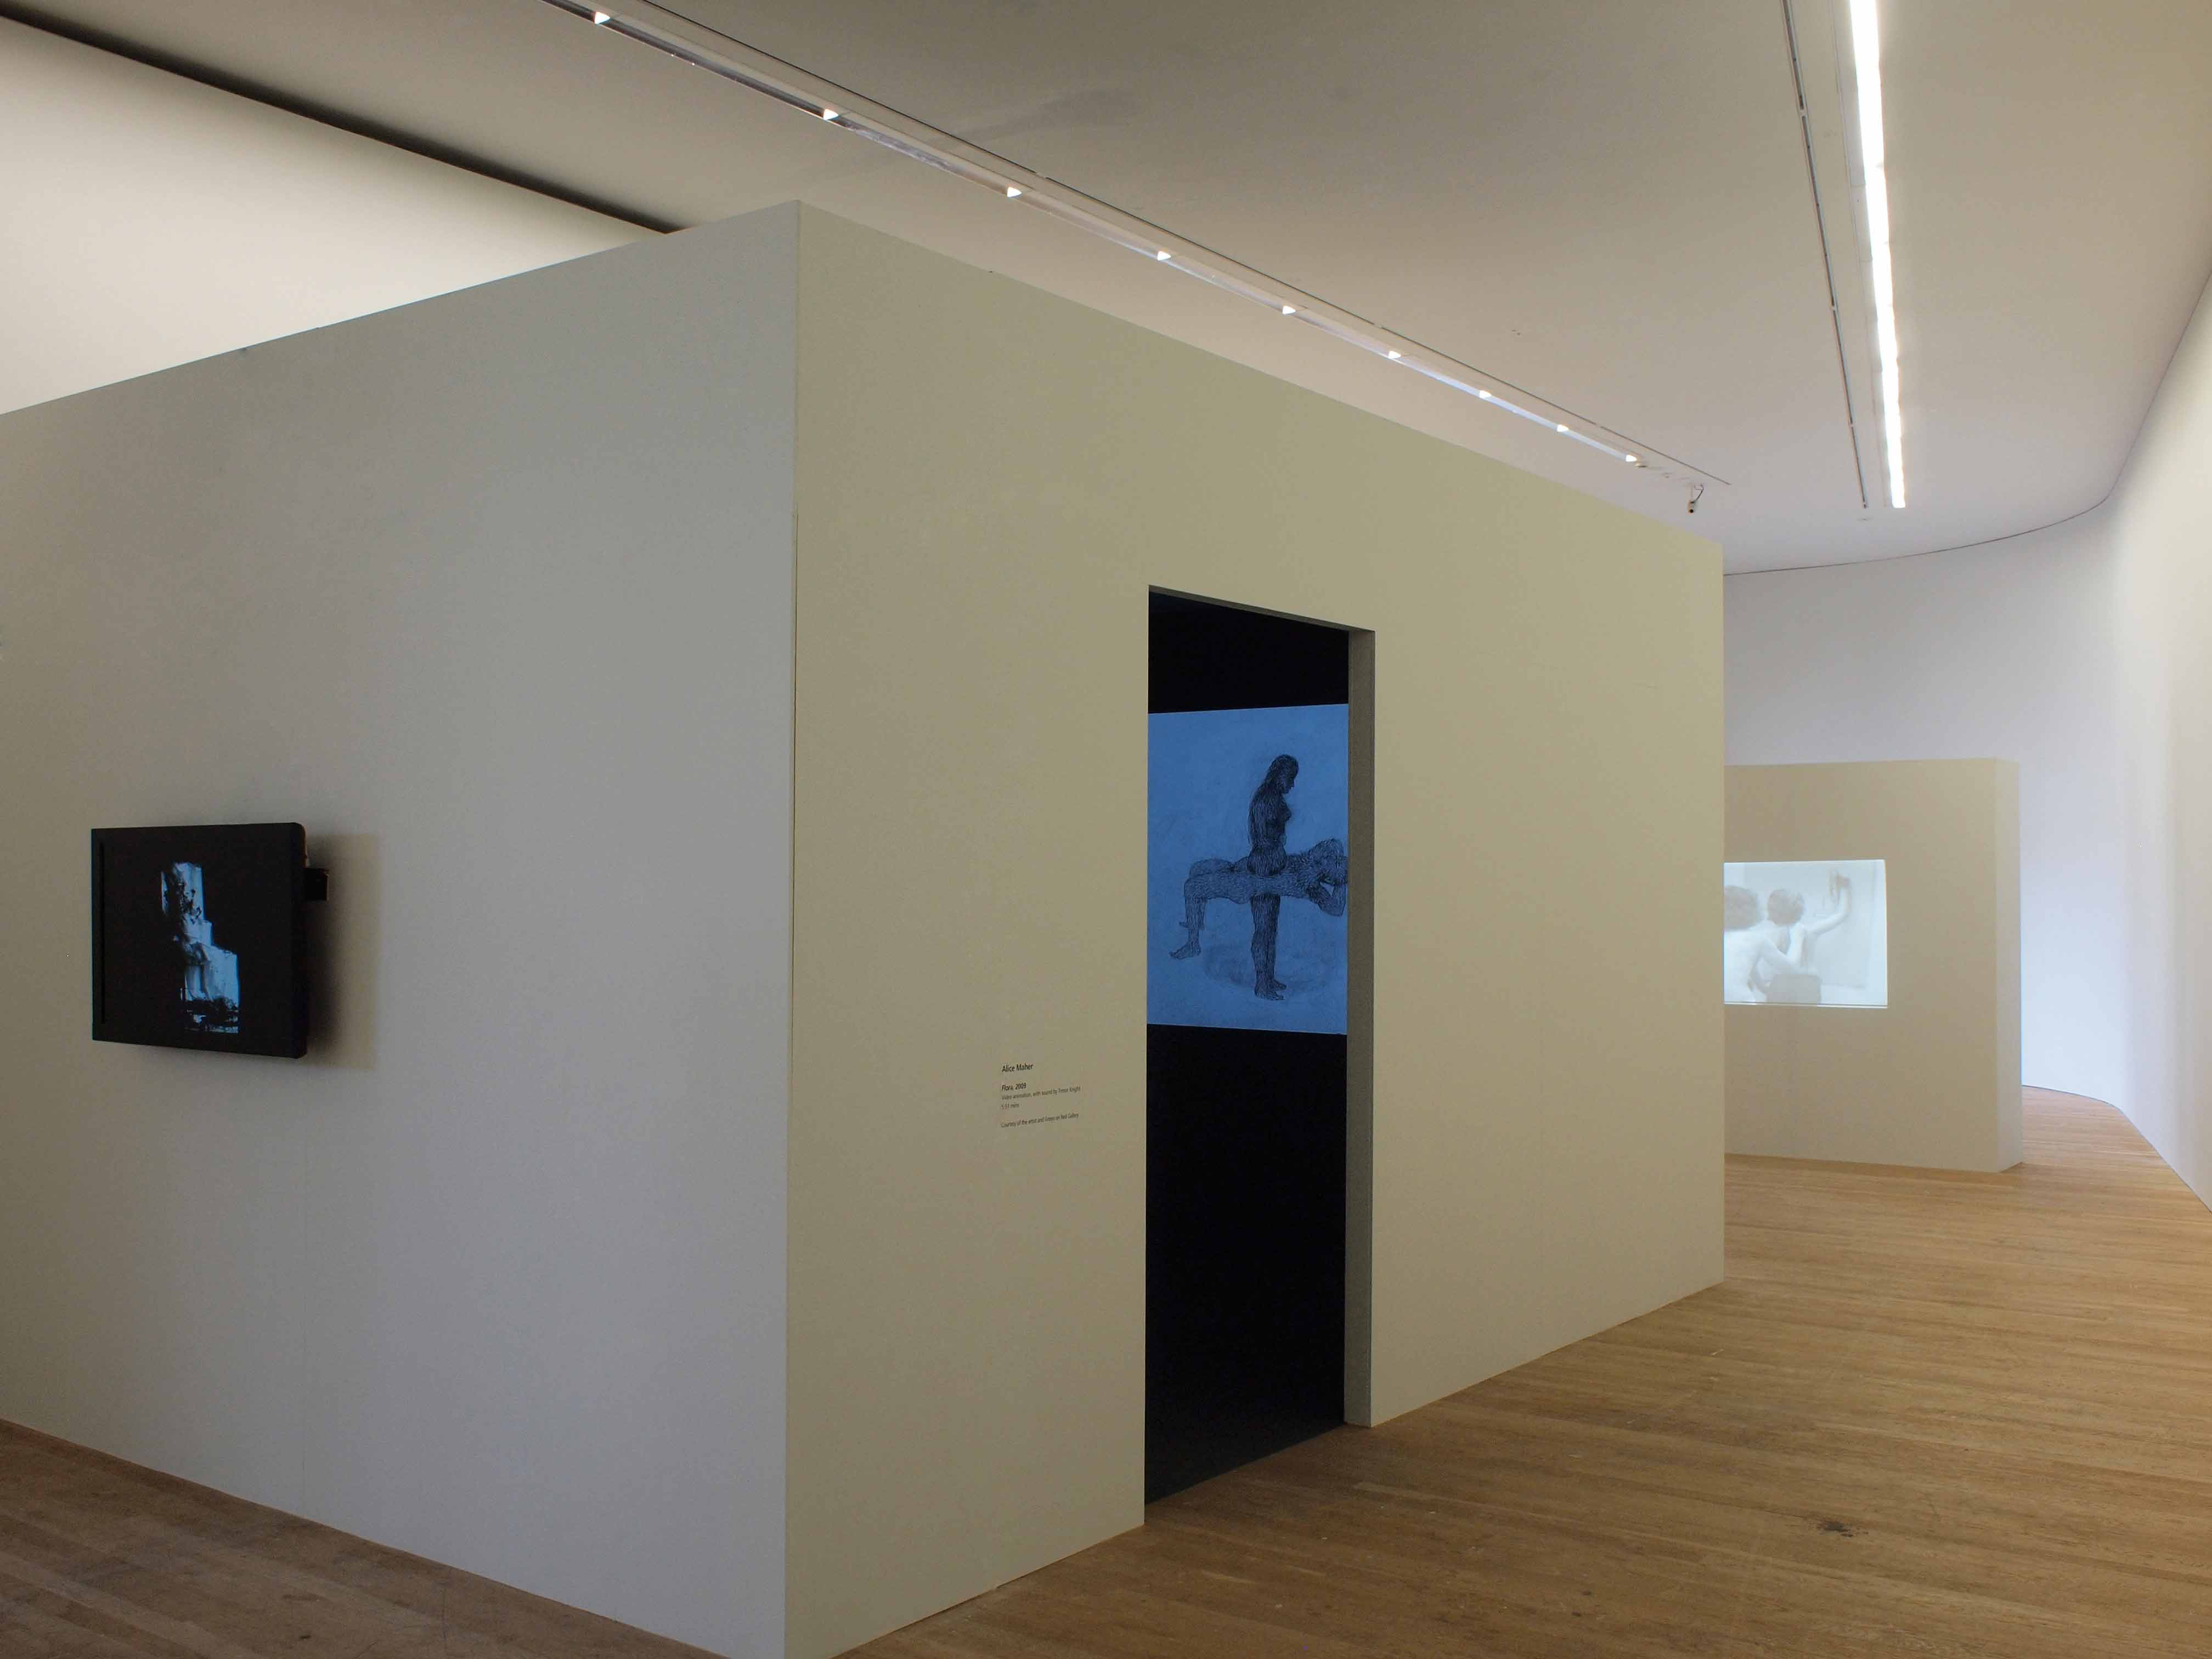 Motion Capture, Lewis Glucksman Gallery, Cork, Ireland, 2012. Curated by Ed Krcma & Matt Packer.